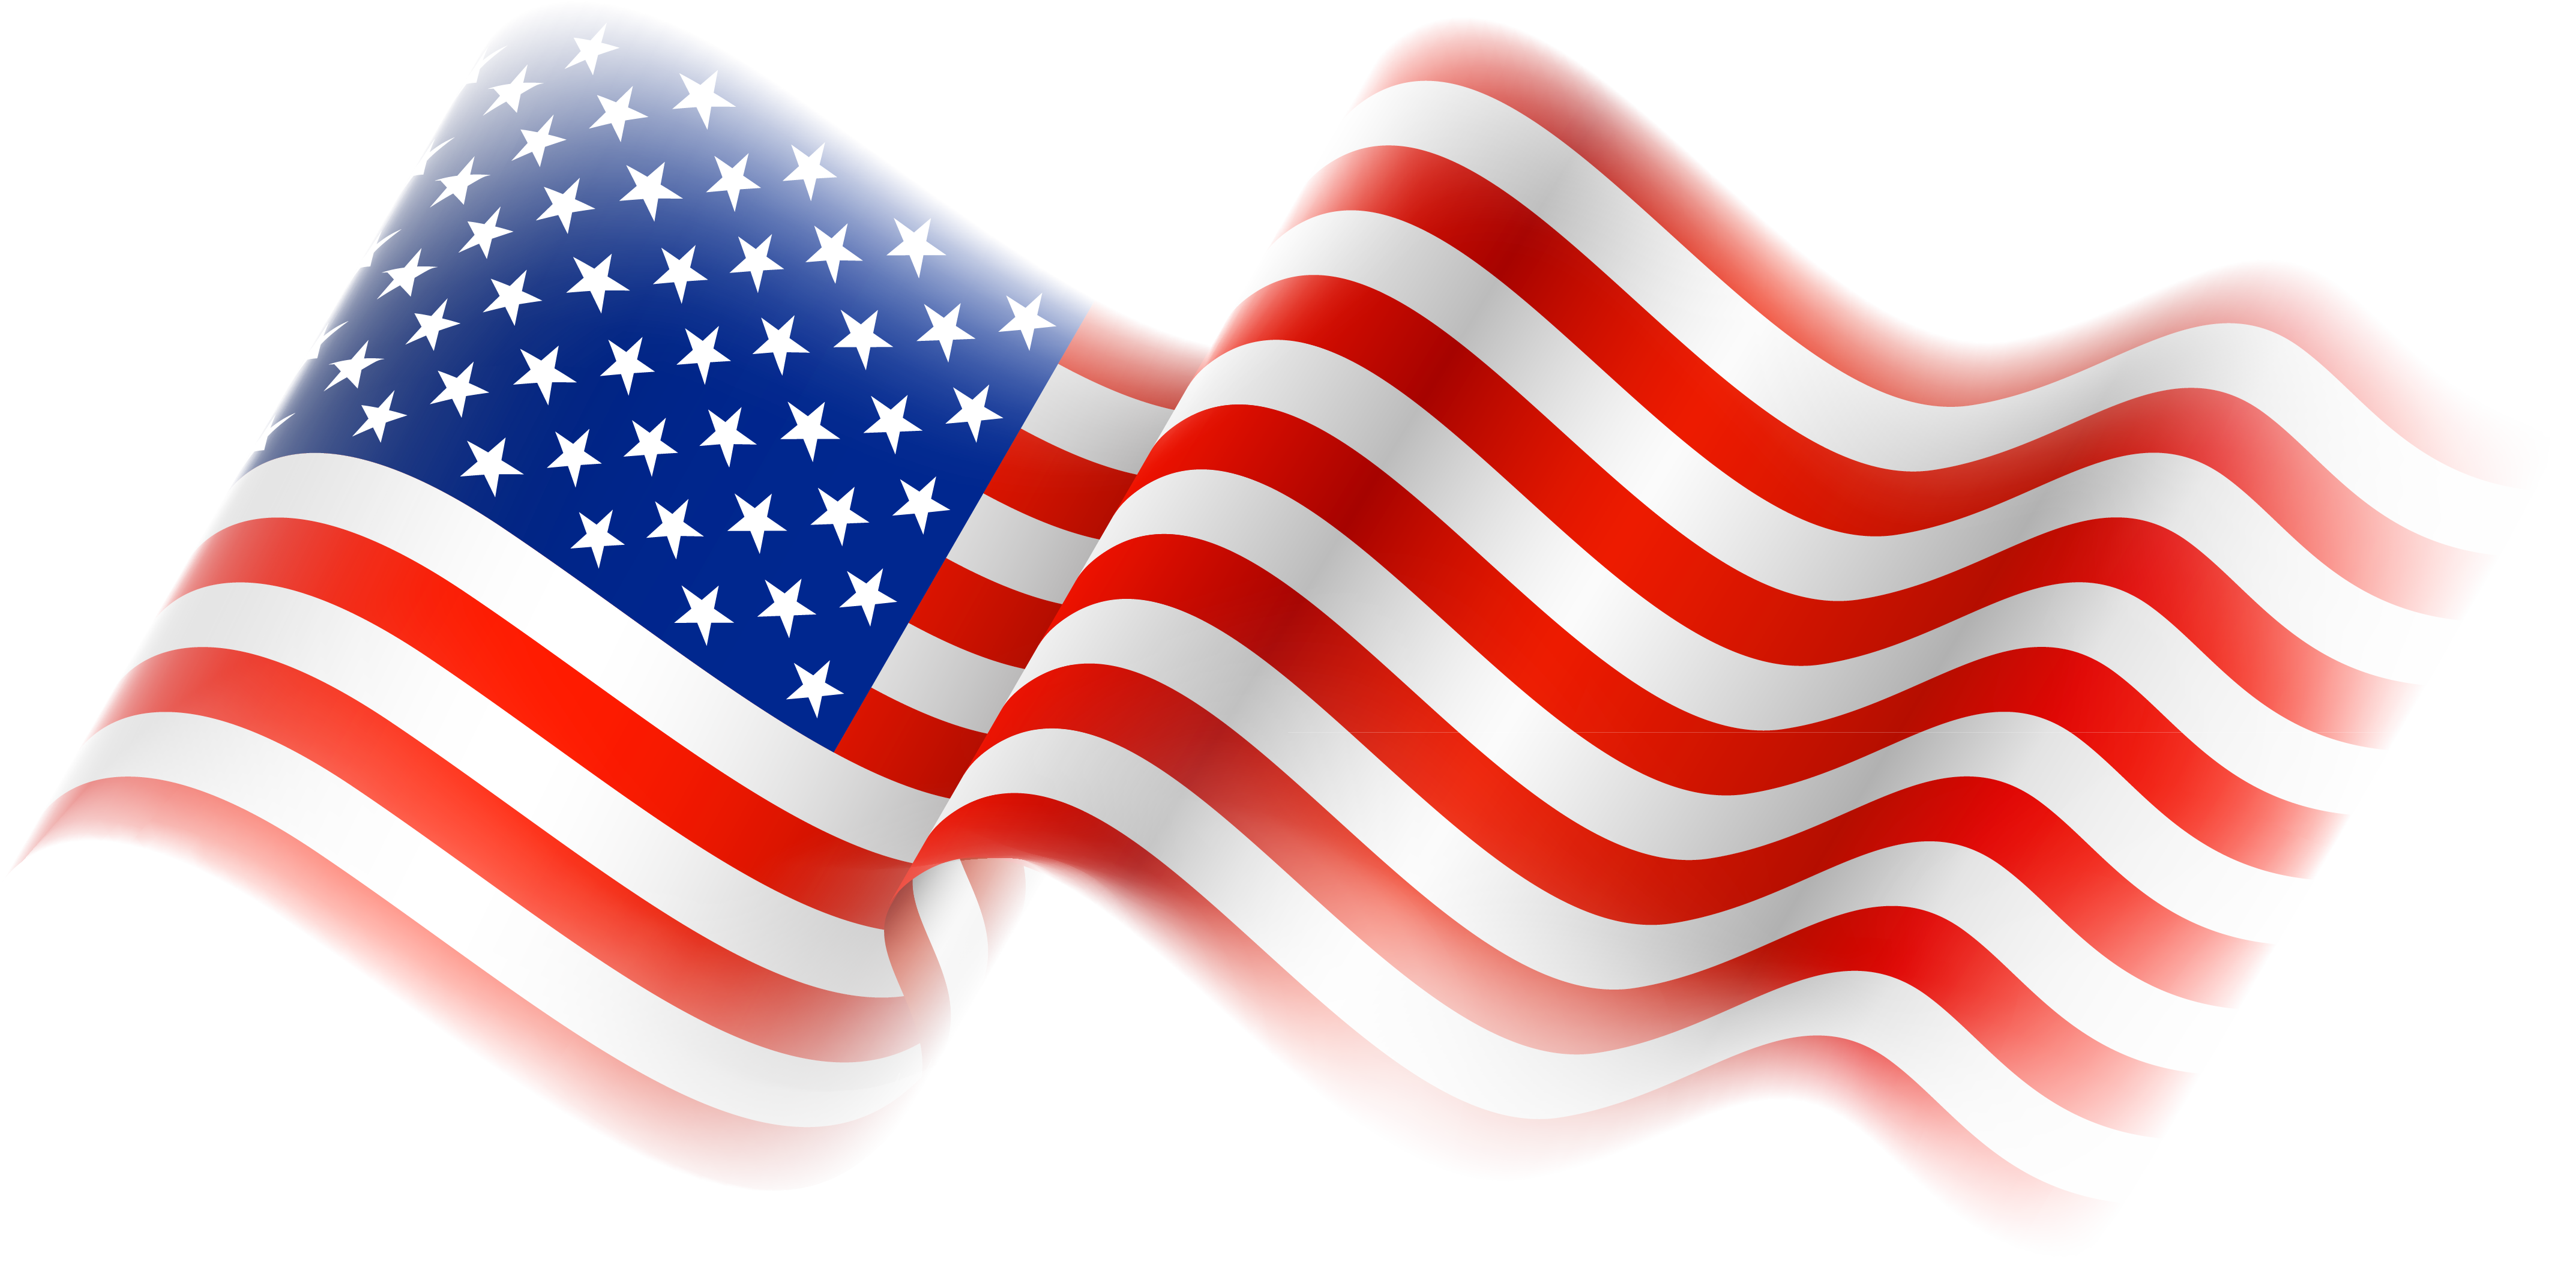 Free american flag clipart 2